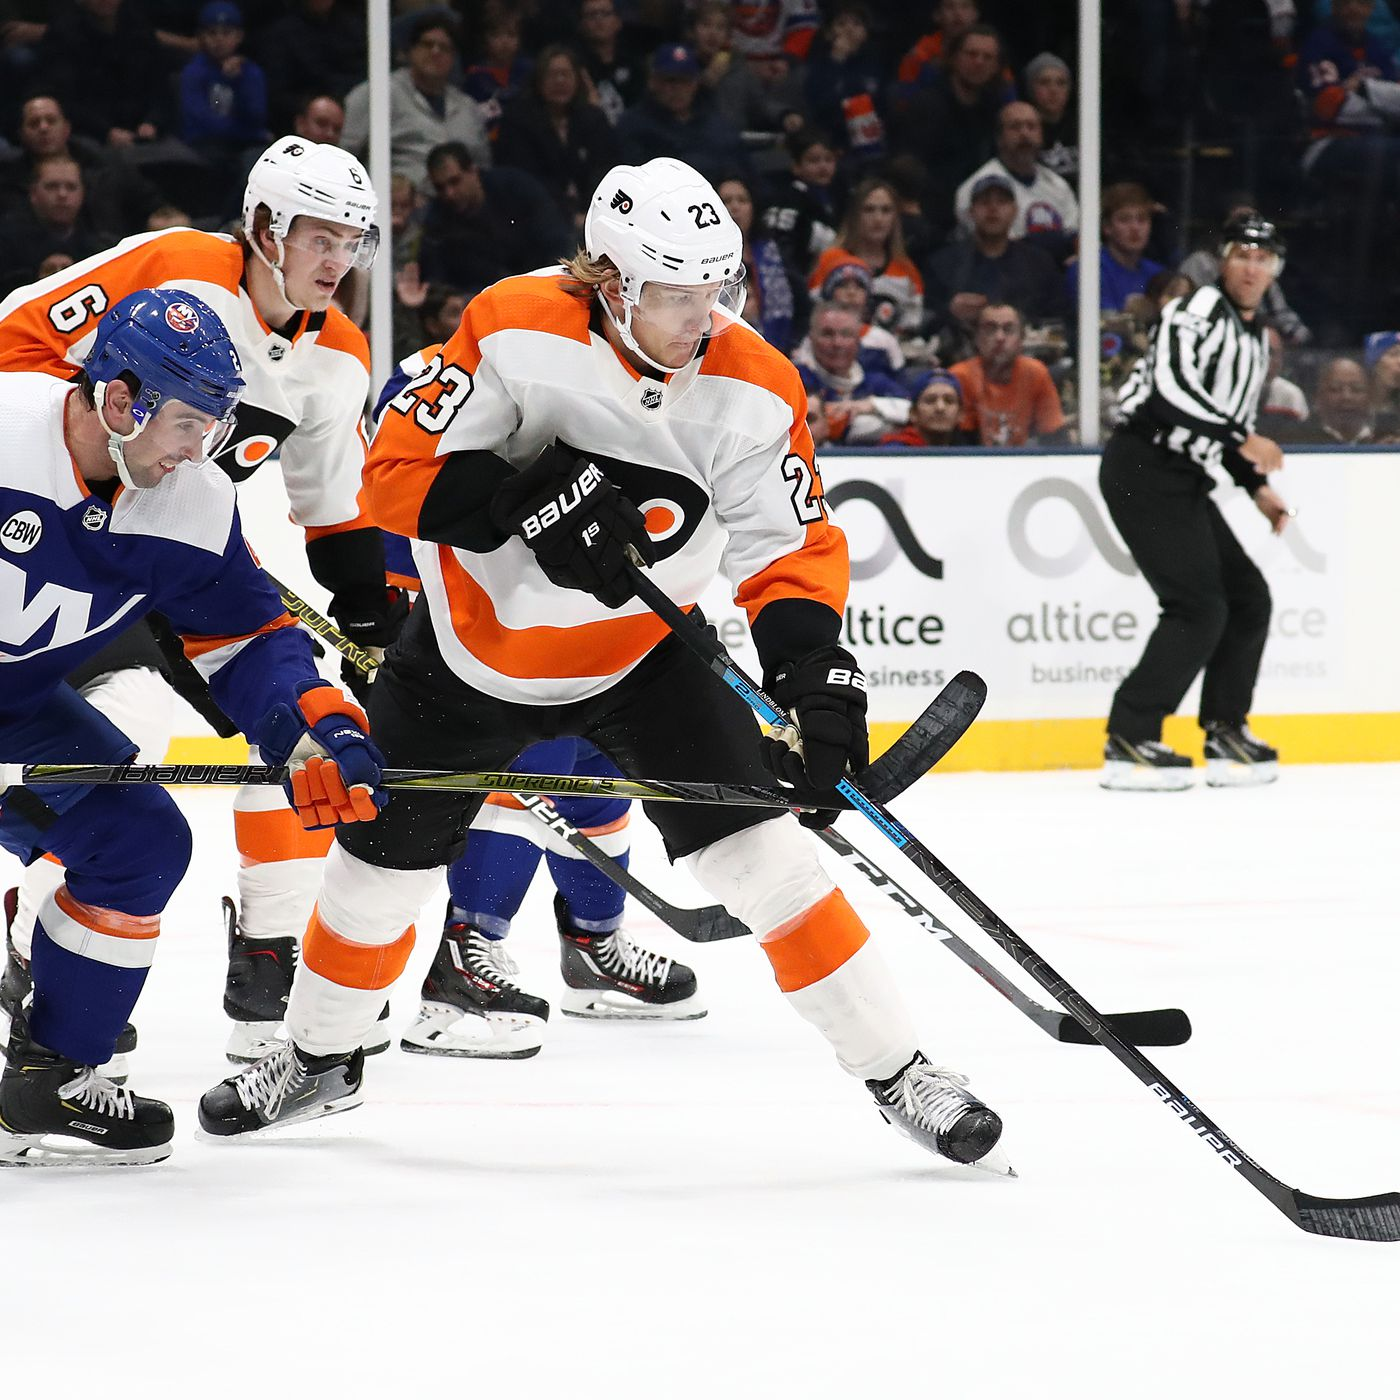 Philadelphia Flyers At New York Islanders Game 68 Lighthouse Hockey